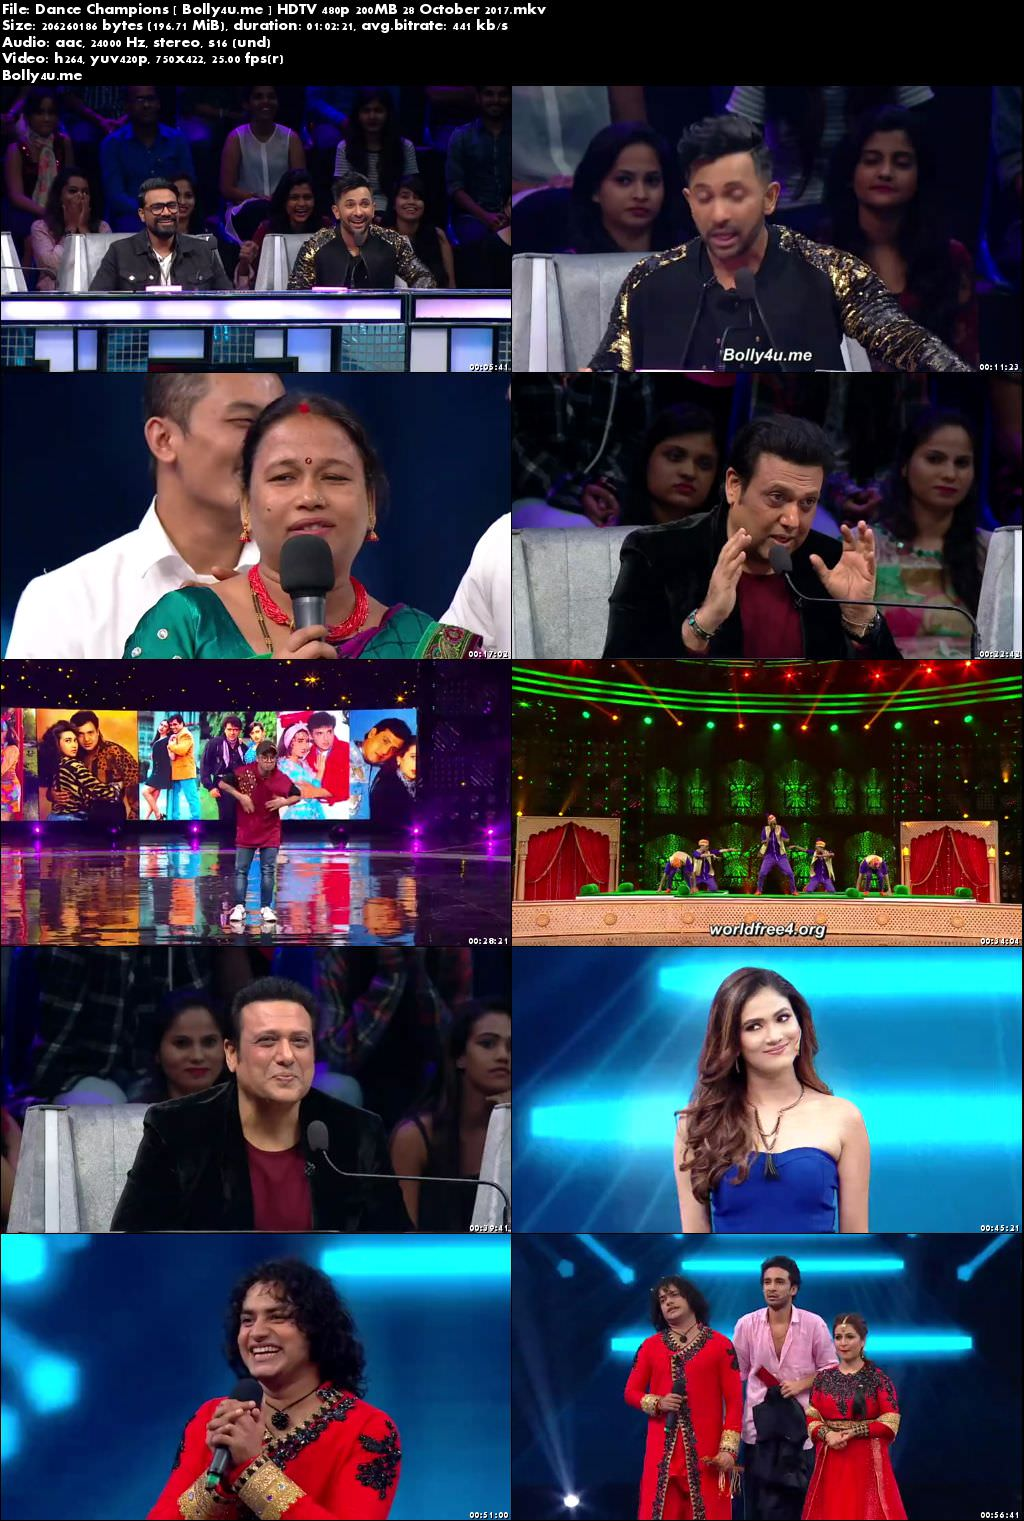 Dance Champions HDTV 480p 200MB 29 October 2017 Download